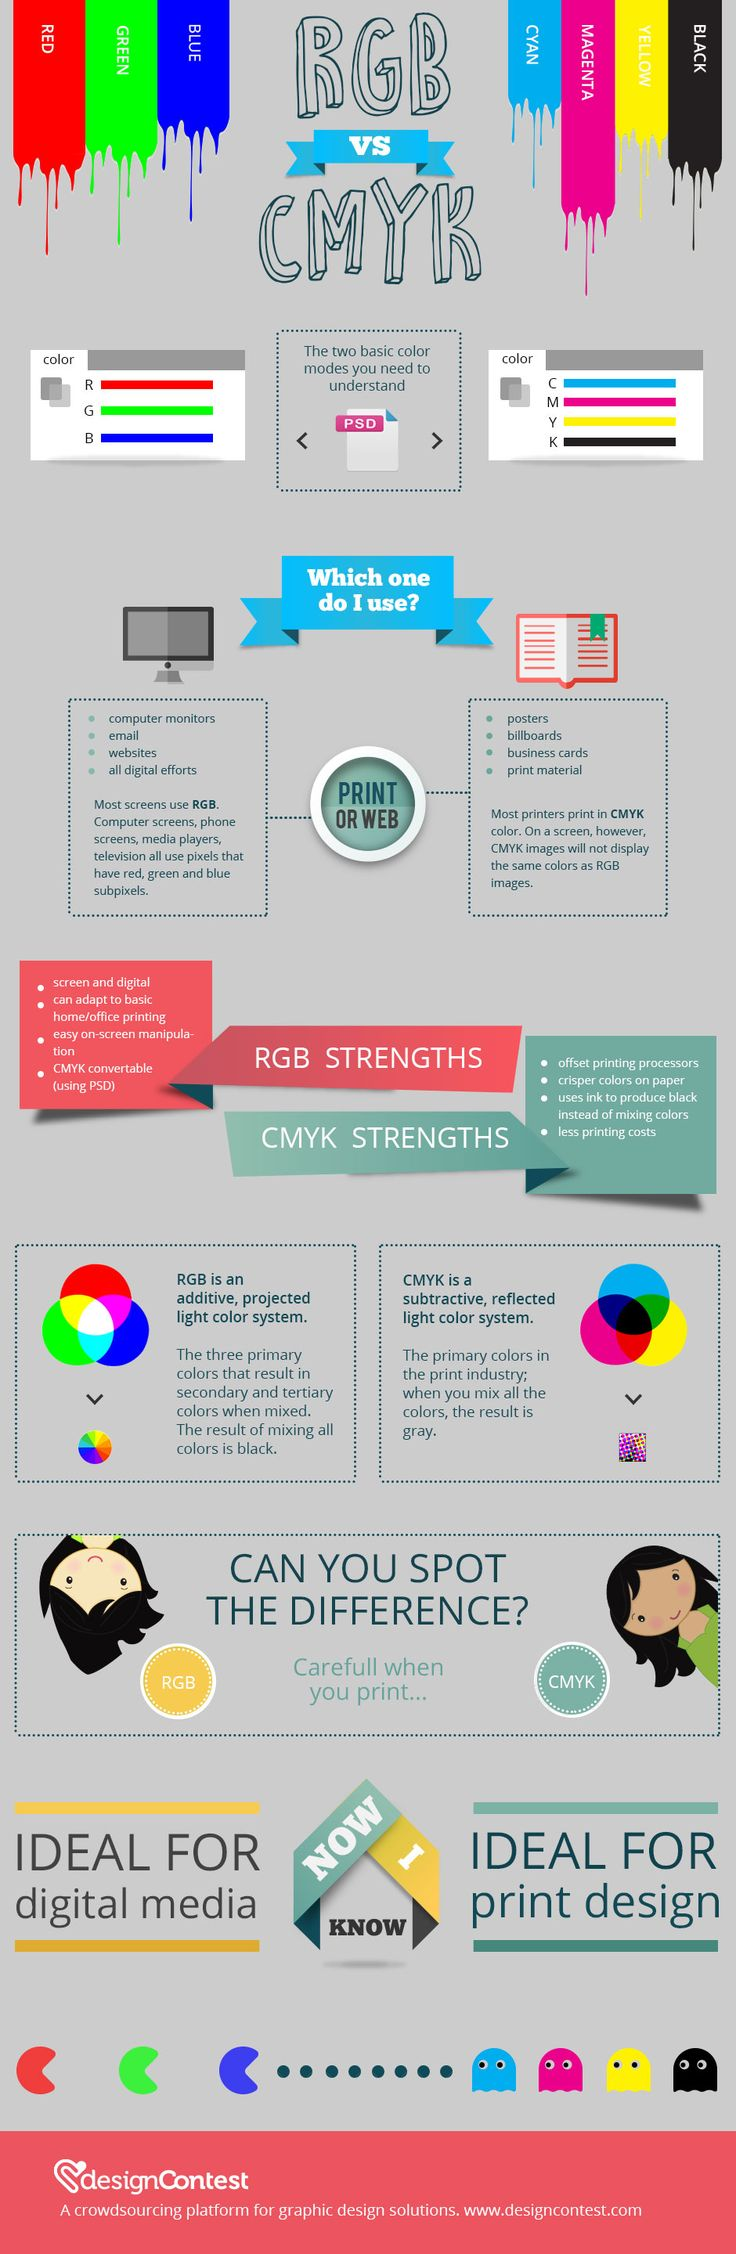 RGB vs CMYK - Which one to choose? [Infographic]